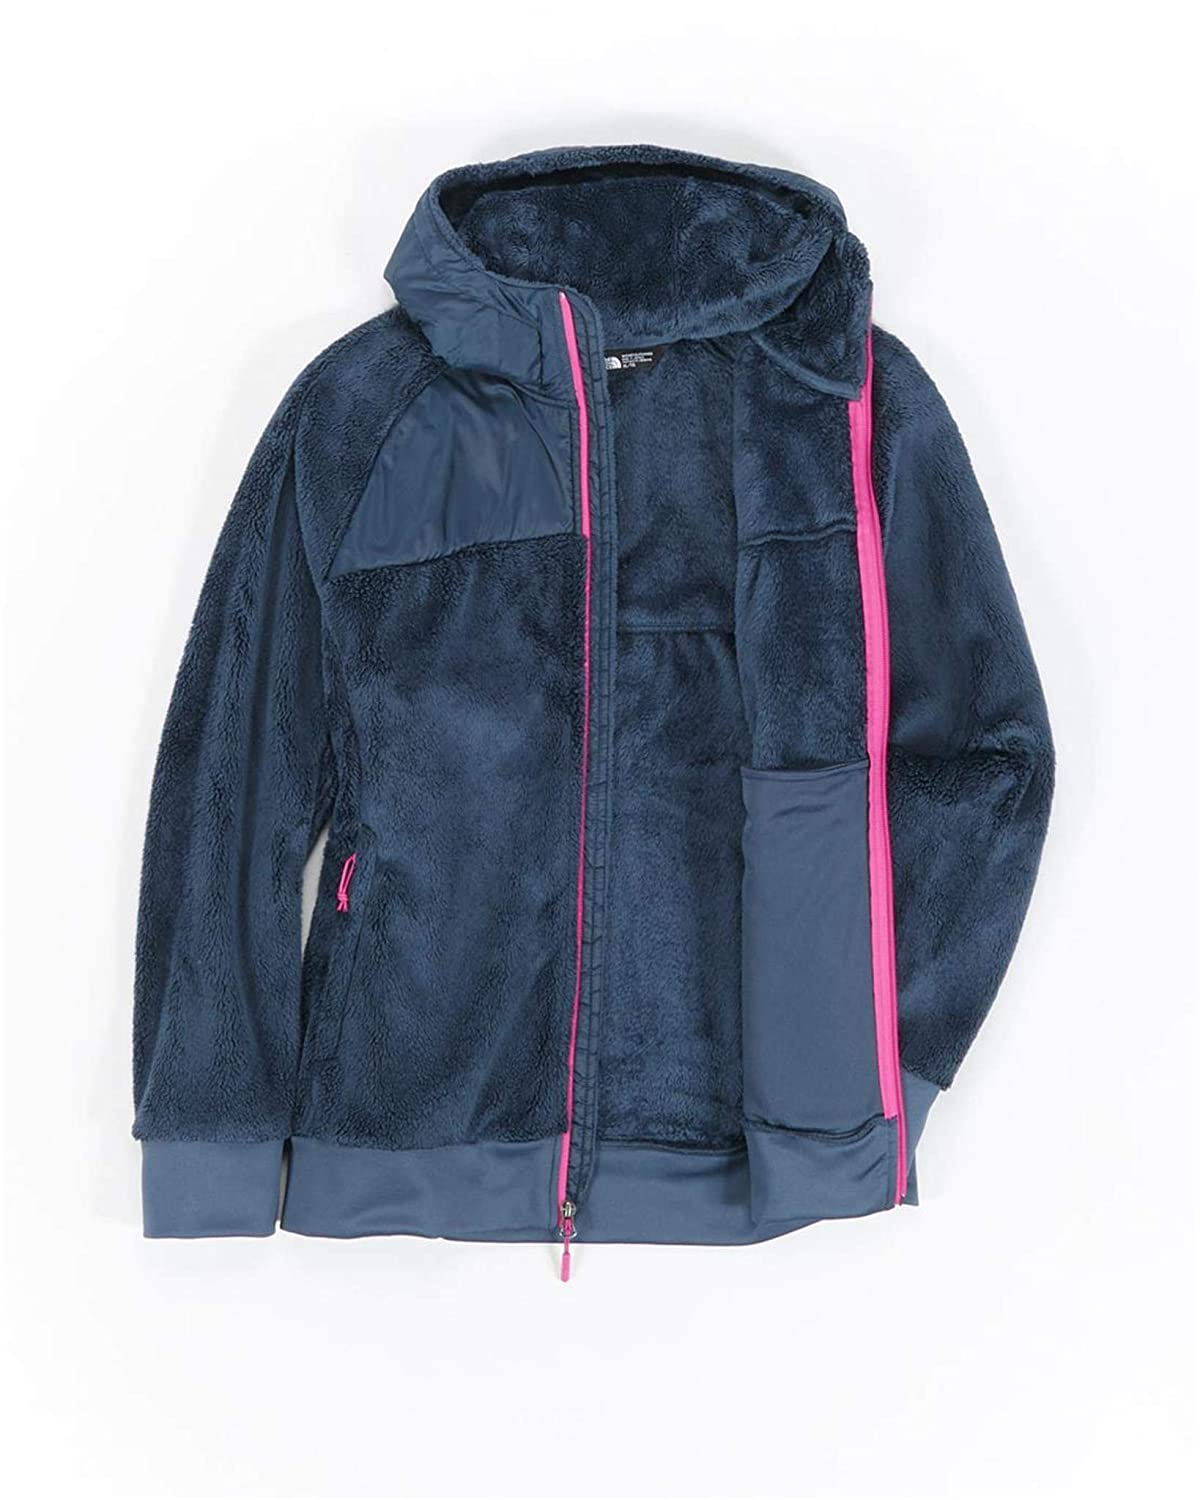 76a9e480d The North Face Women's OSO Hoodie